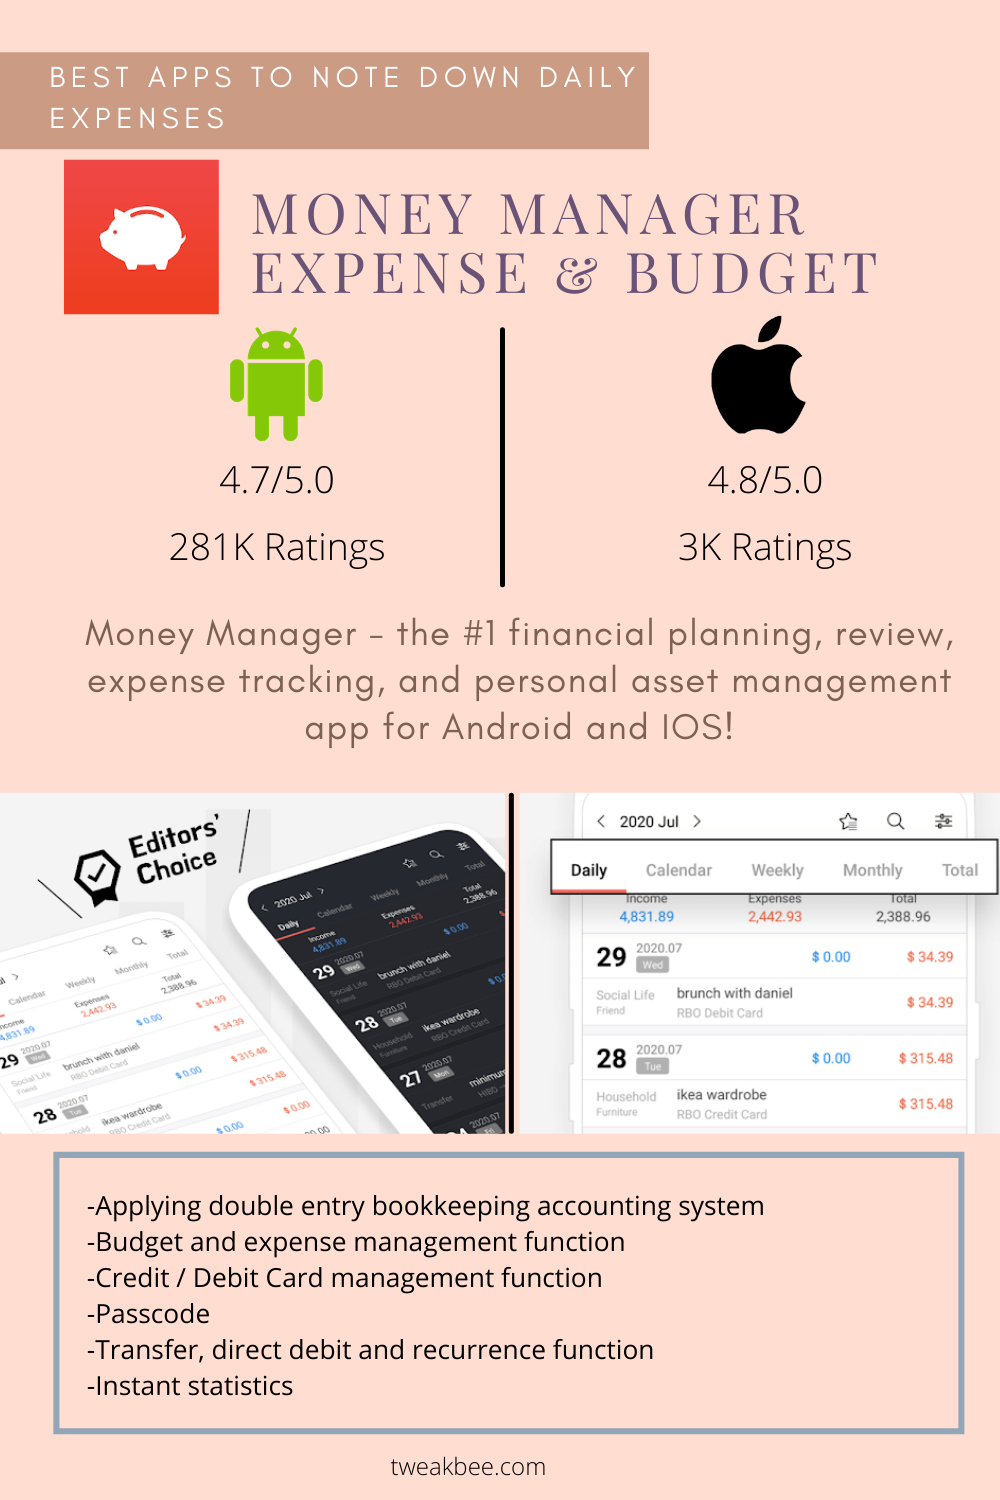 Money Manager Expense & Budget - Best Apps to Note Down Daily Expenses